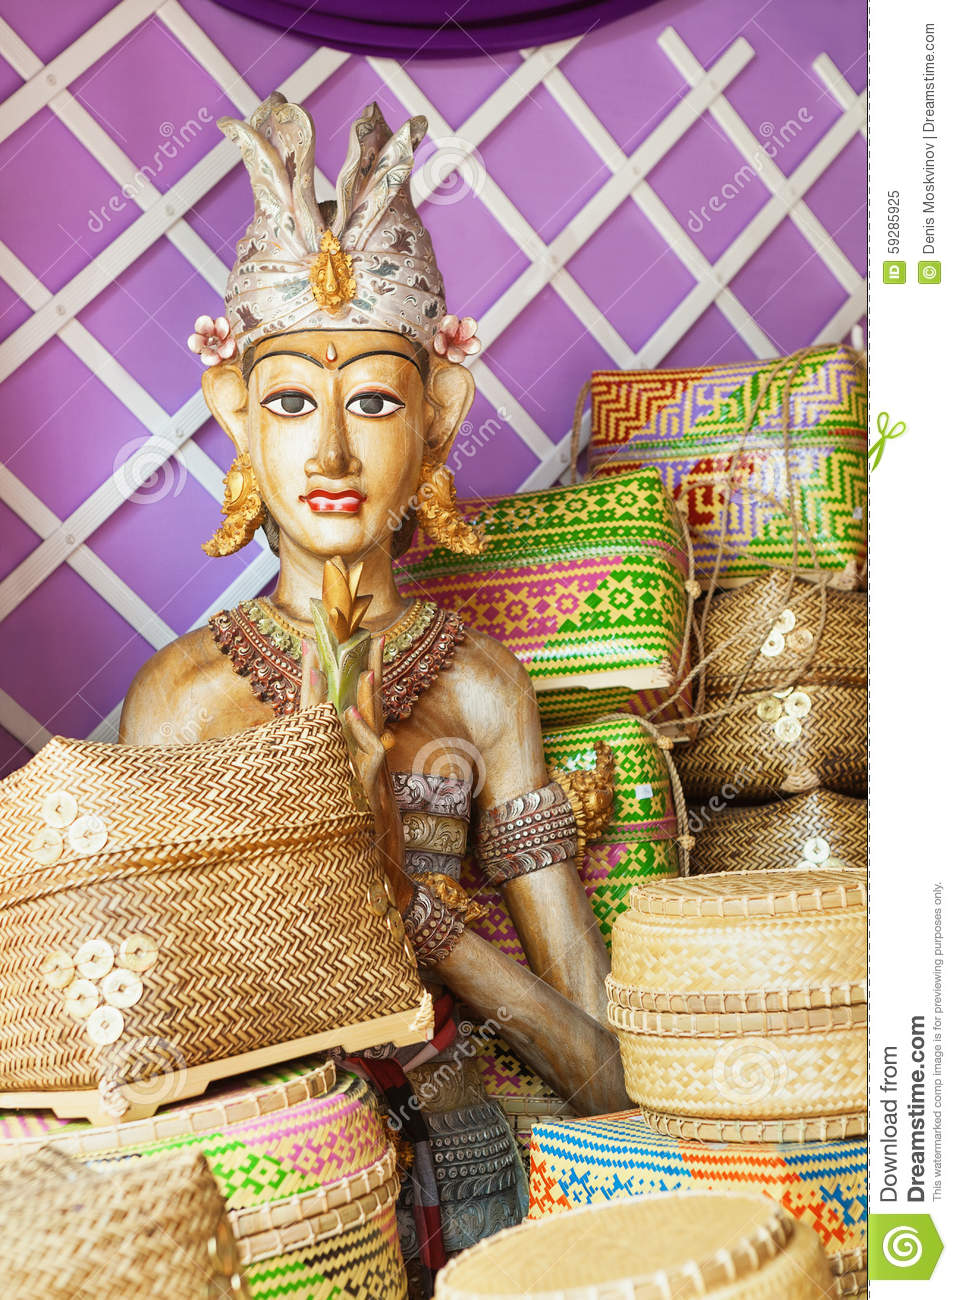 Bamboo offering boxes and traditional ceremonial balinese man figure